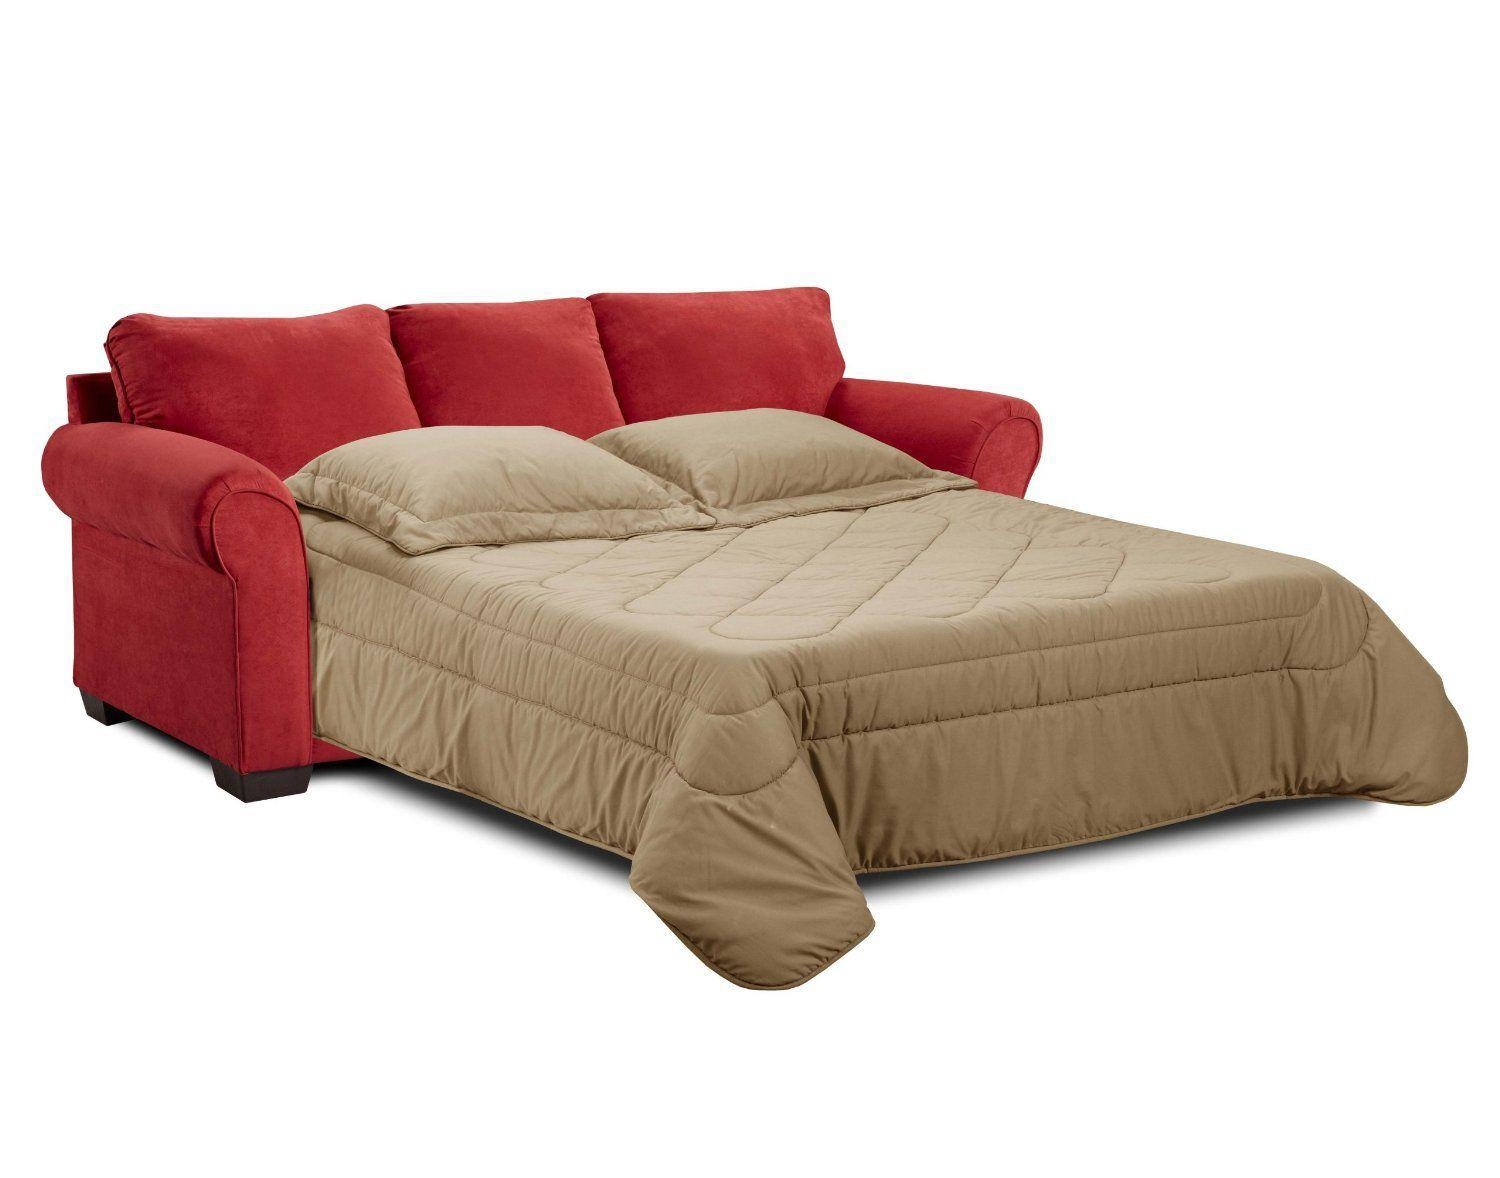 sears furniture sofas american made sleeper 20 best collection of sofa ideas